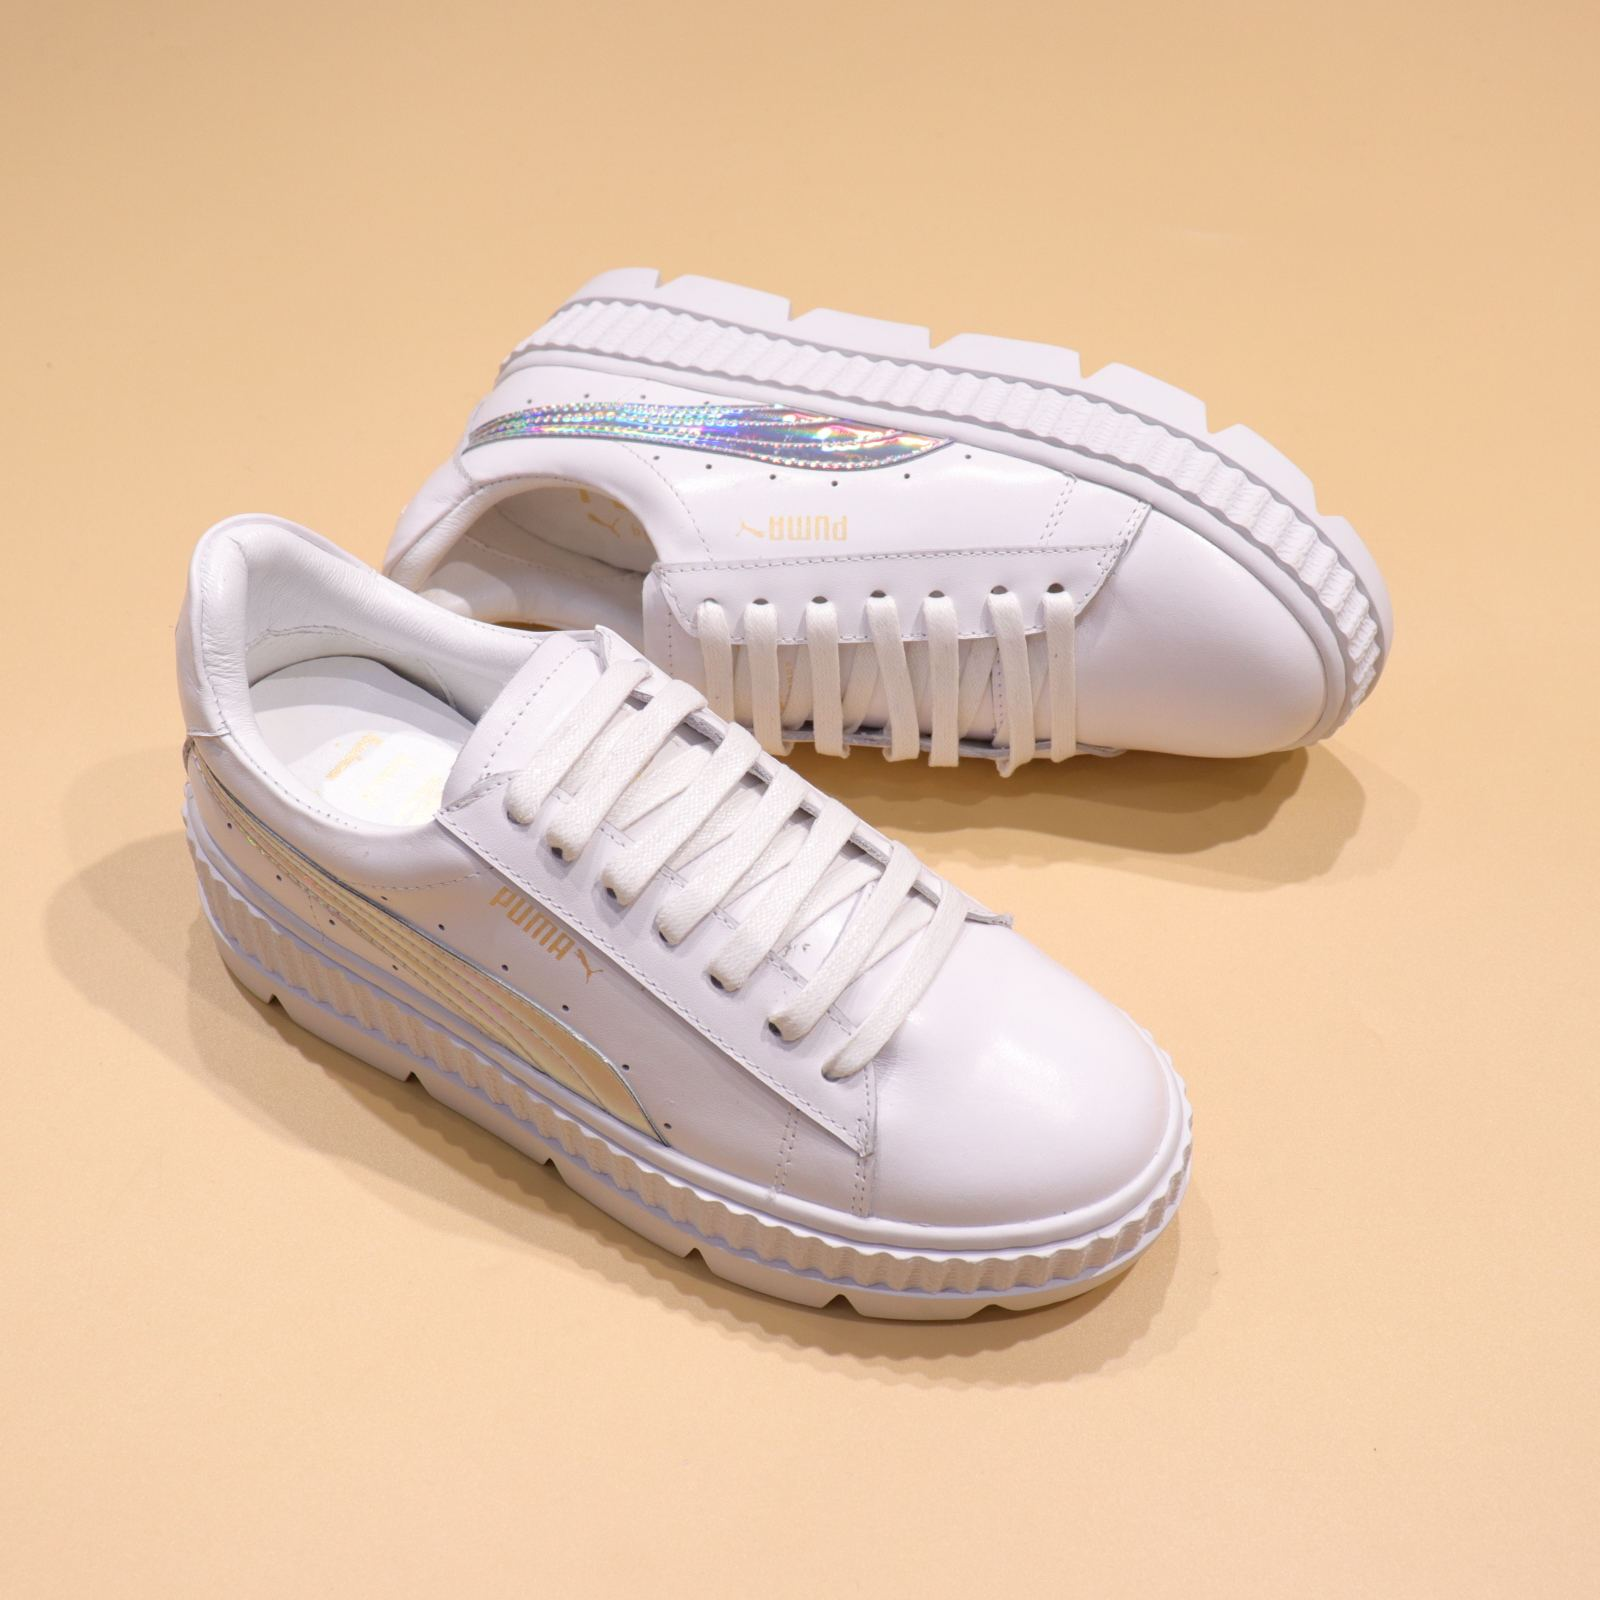 premium selection 1a1a0 c0fa0 Rihanna x Puma Fenty Cleated Creeper 'White-Silver'